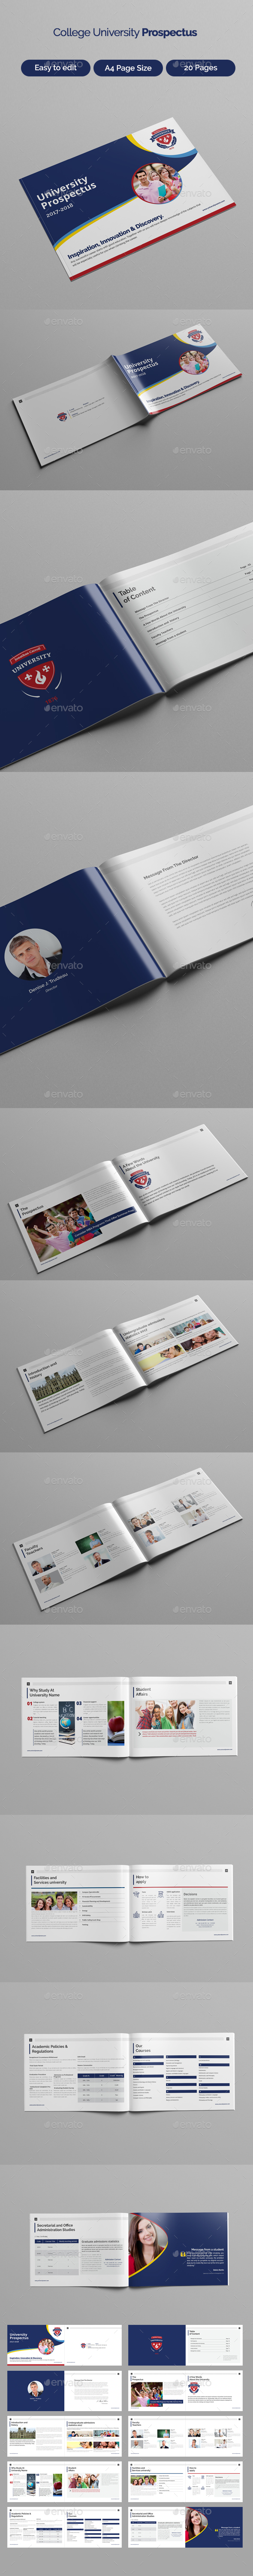 GraphicRiver College University Prospectus 21077912